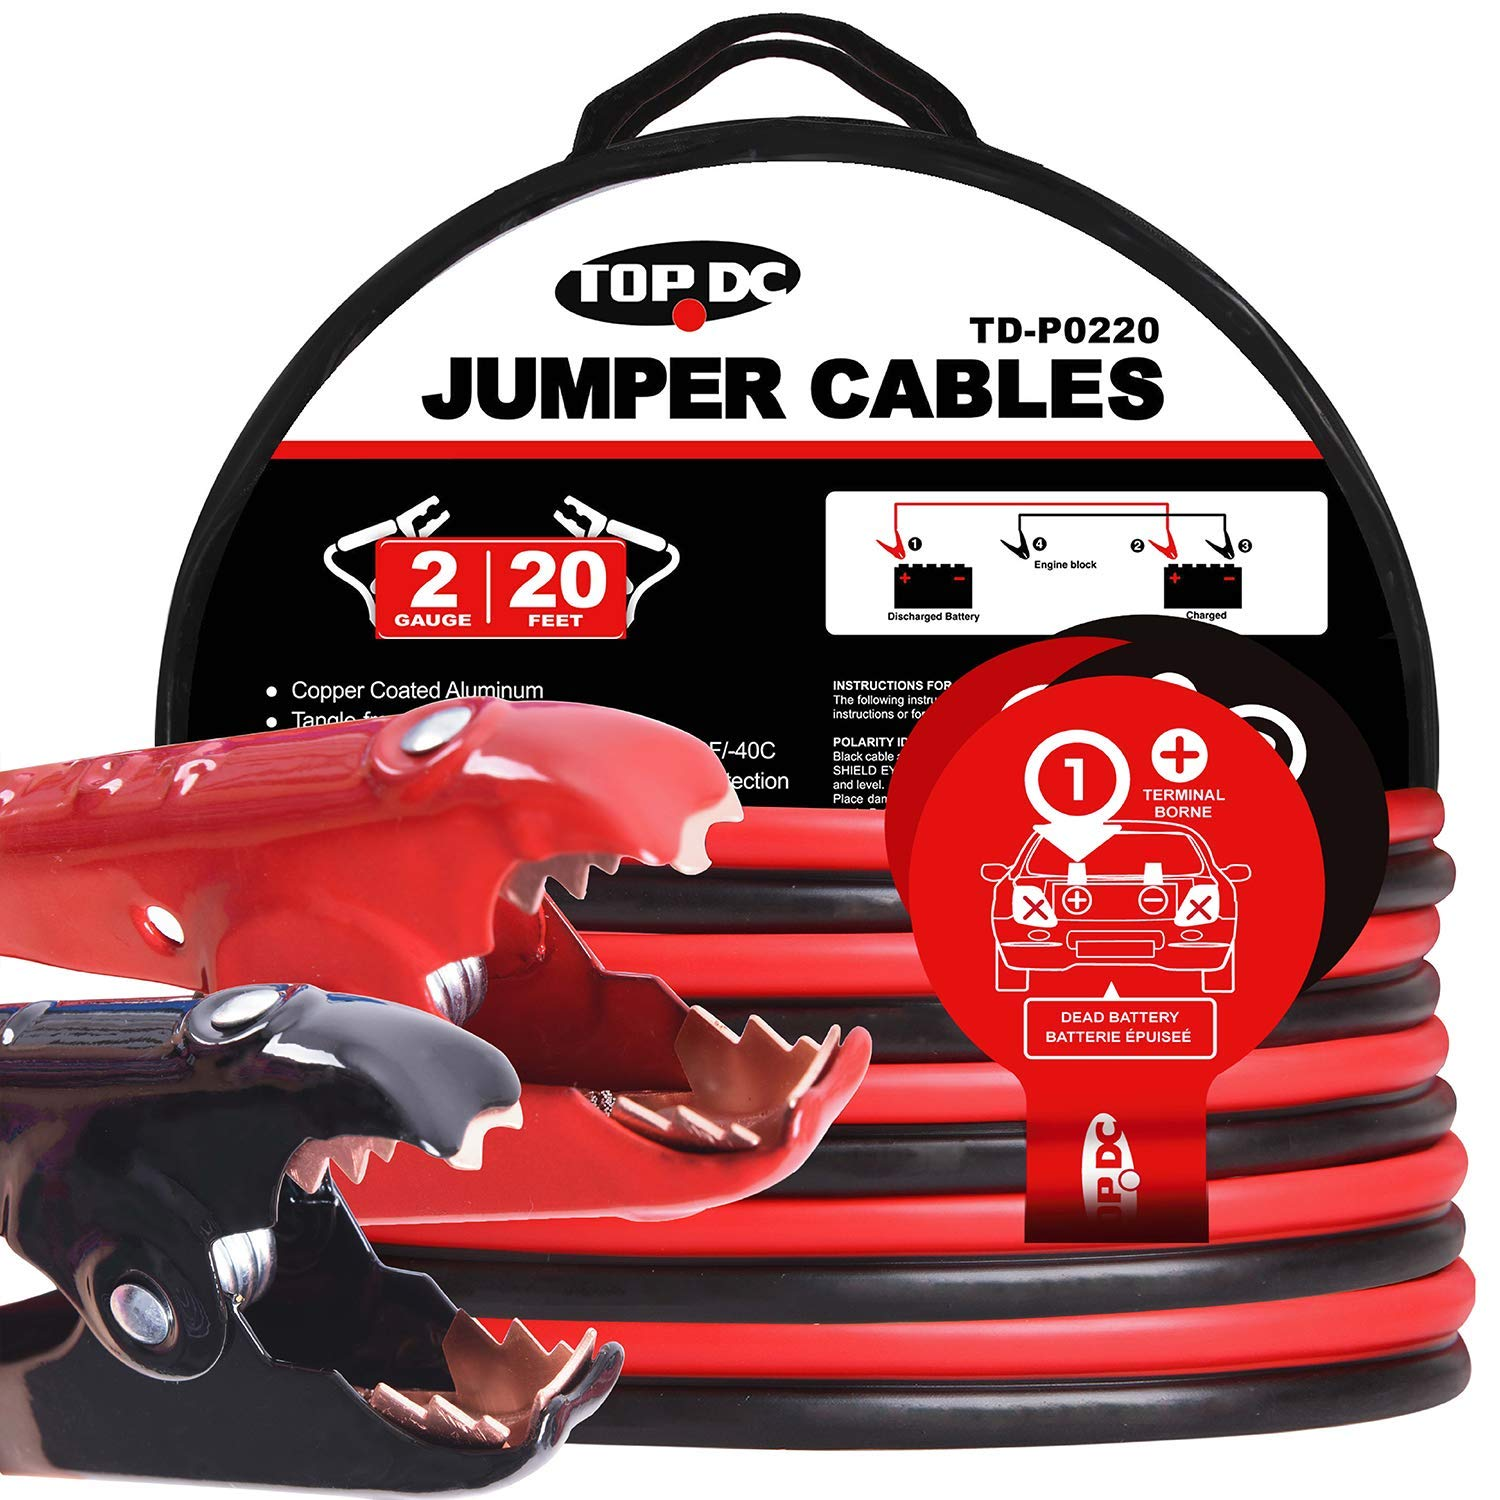 TOPDC Jumper Cables 1-Gauge 25-FT 700Amp Heavy Duty Booster Cables with Carry Bag 1AWG x 25